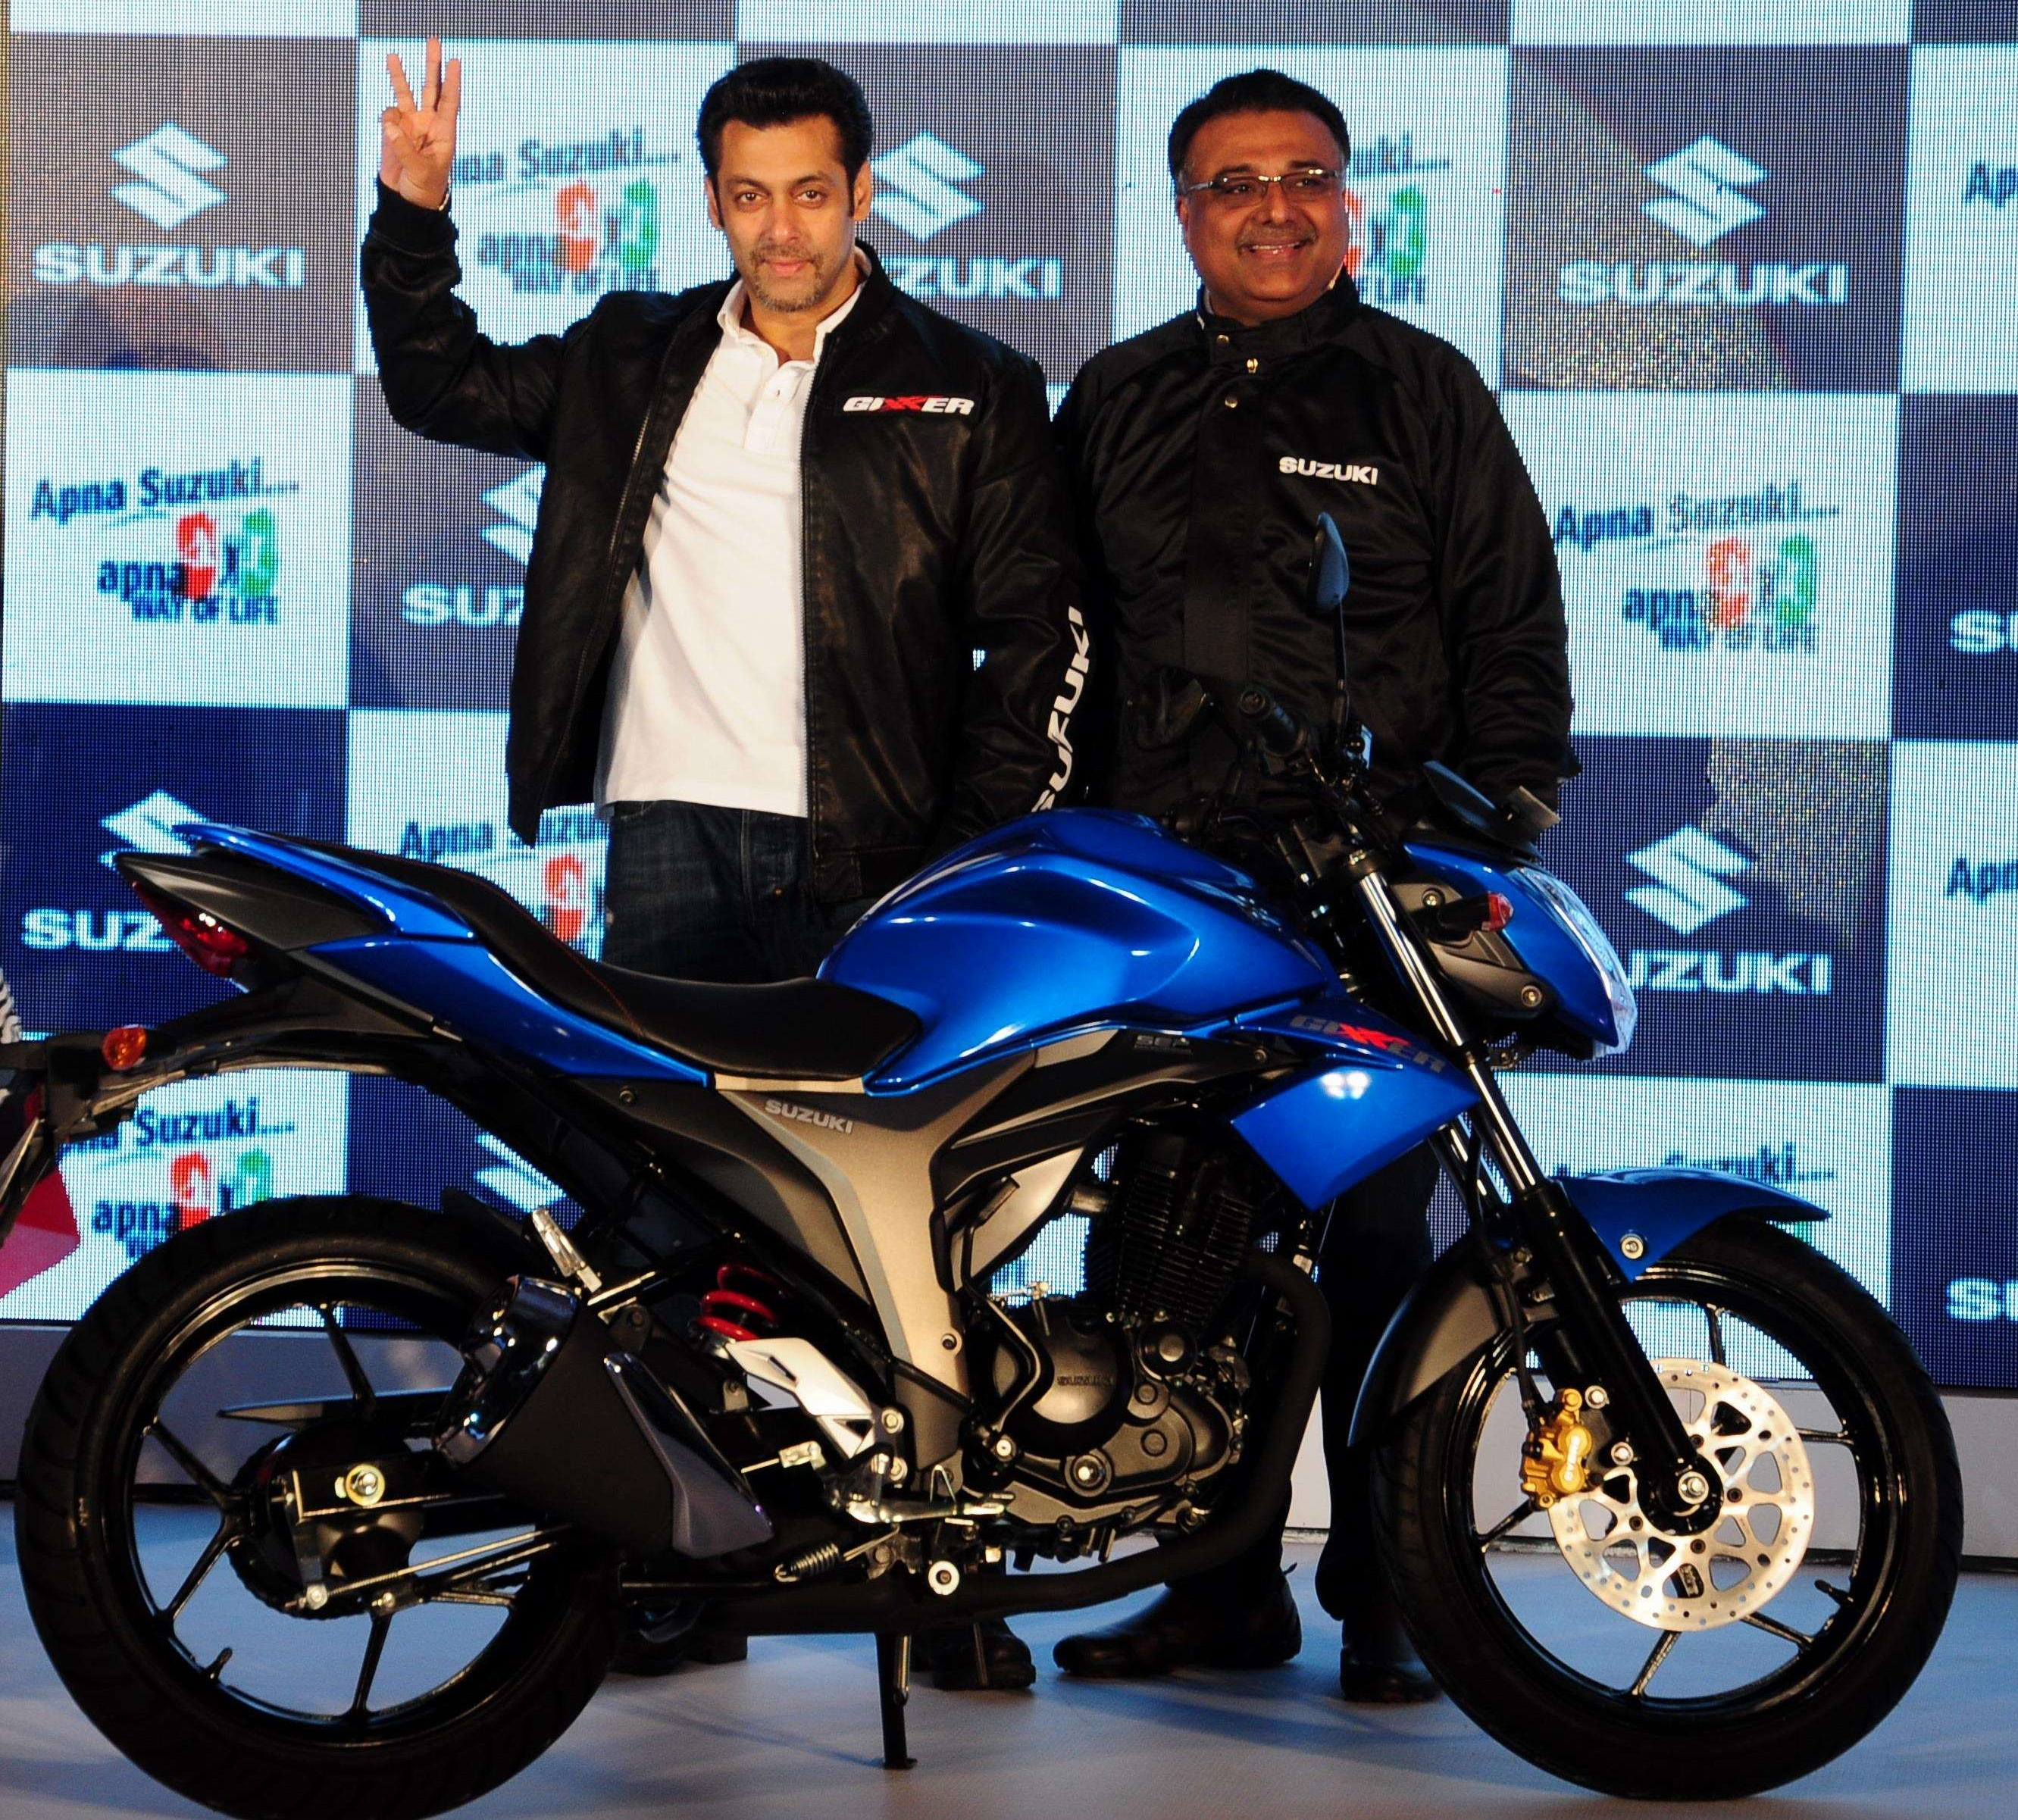 2014-suzuki-gixxer-150-india-launch